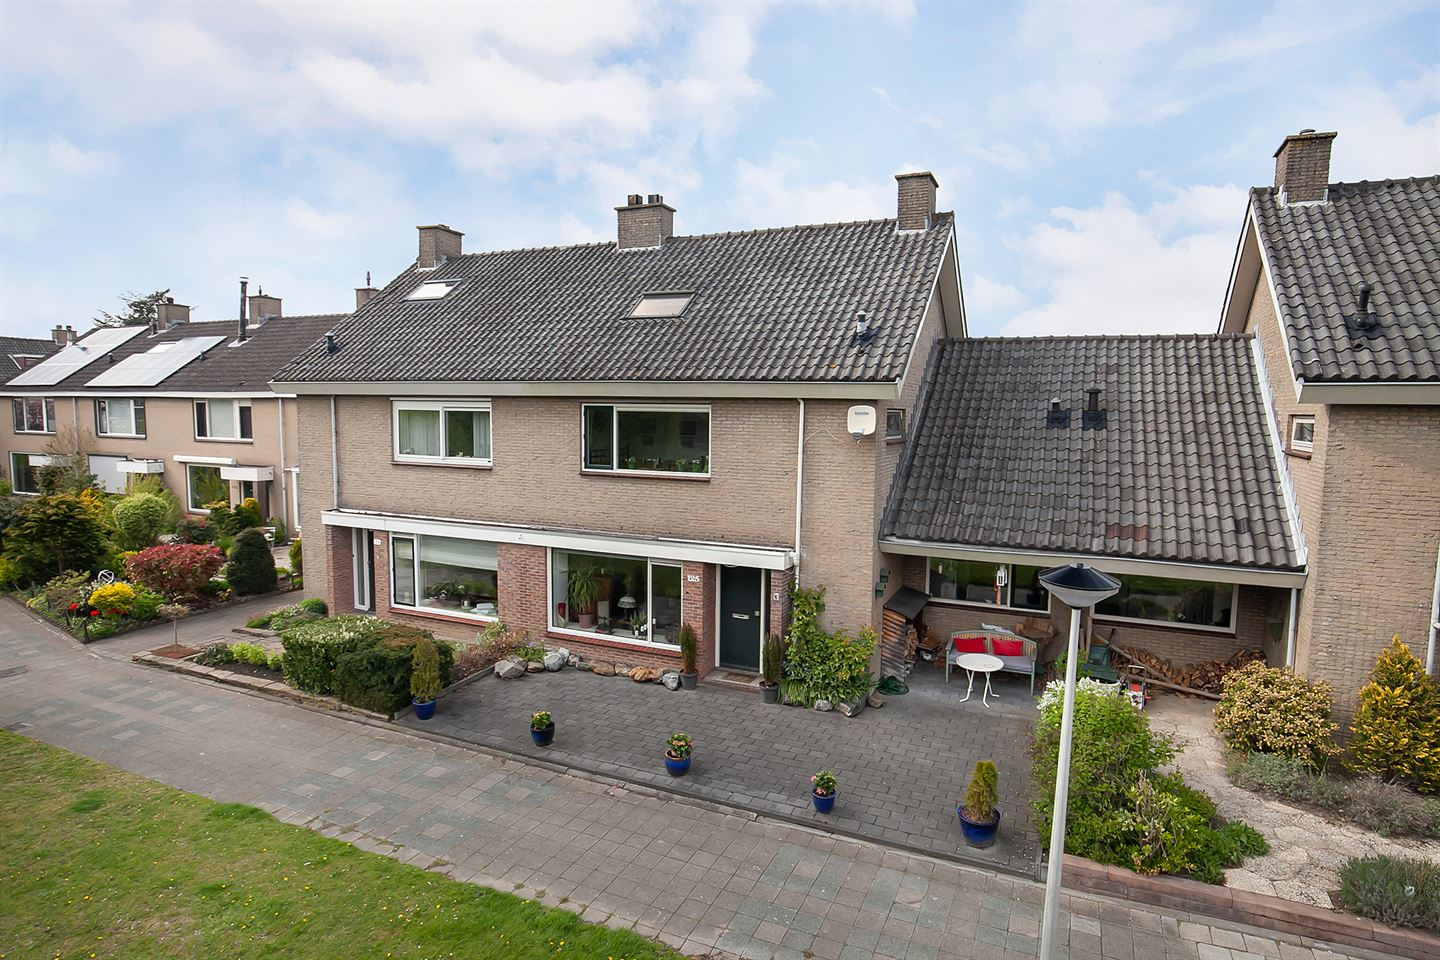 View photo 1 of Ghijseland 125